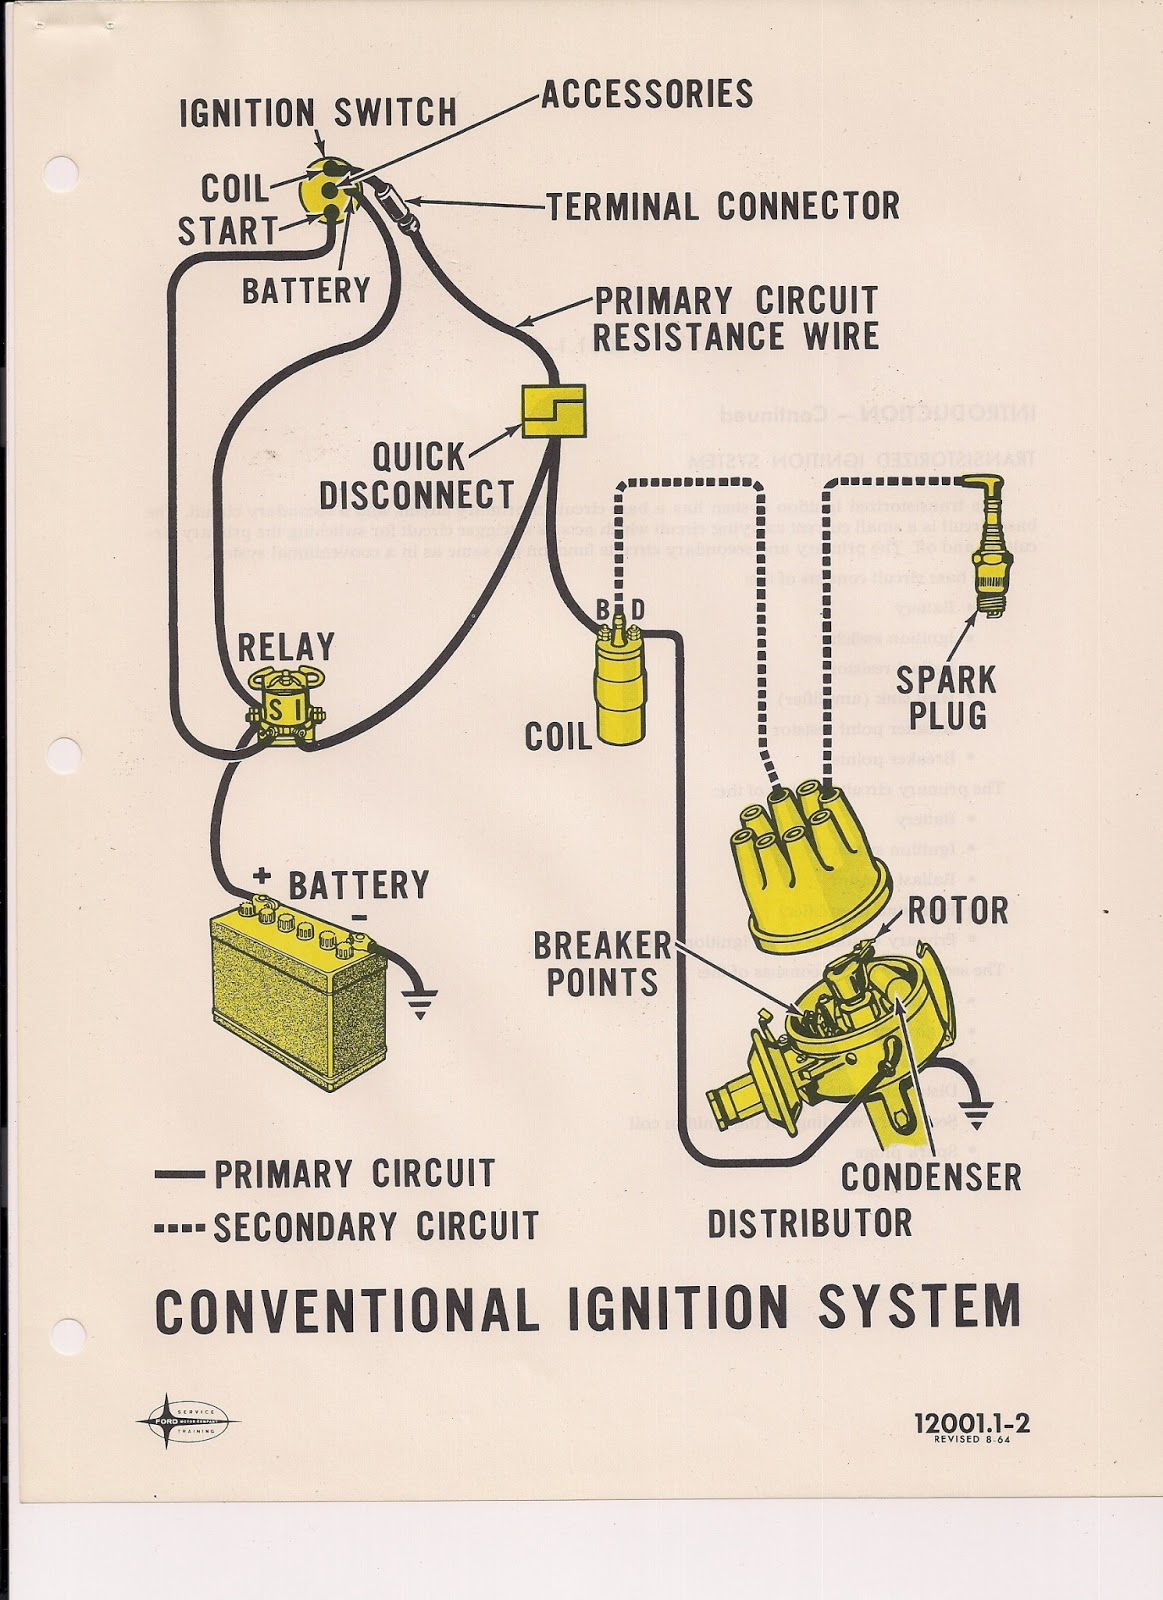 Ignition+1 the care and feeding of ponies mustang ignition system 1965 and 1966 1966 mustang starter solenoid wiring diagram at bayanpartner.co